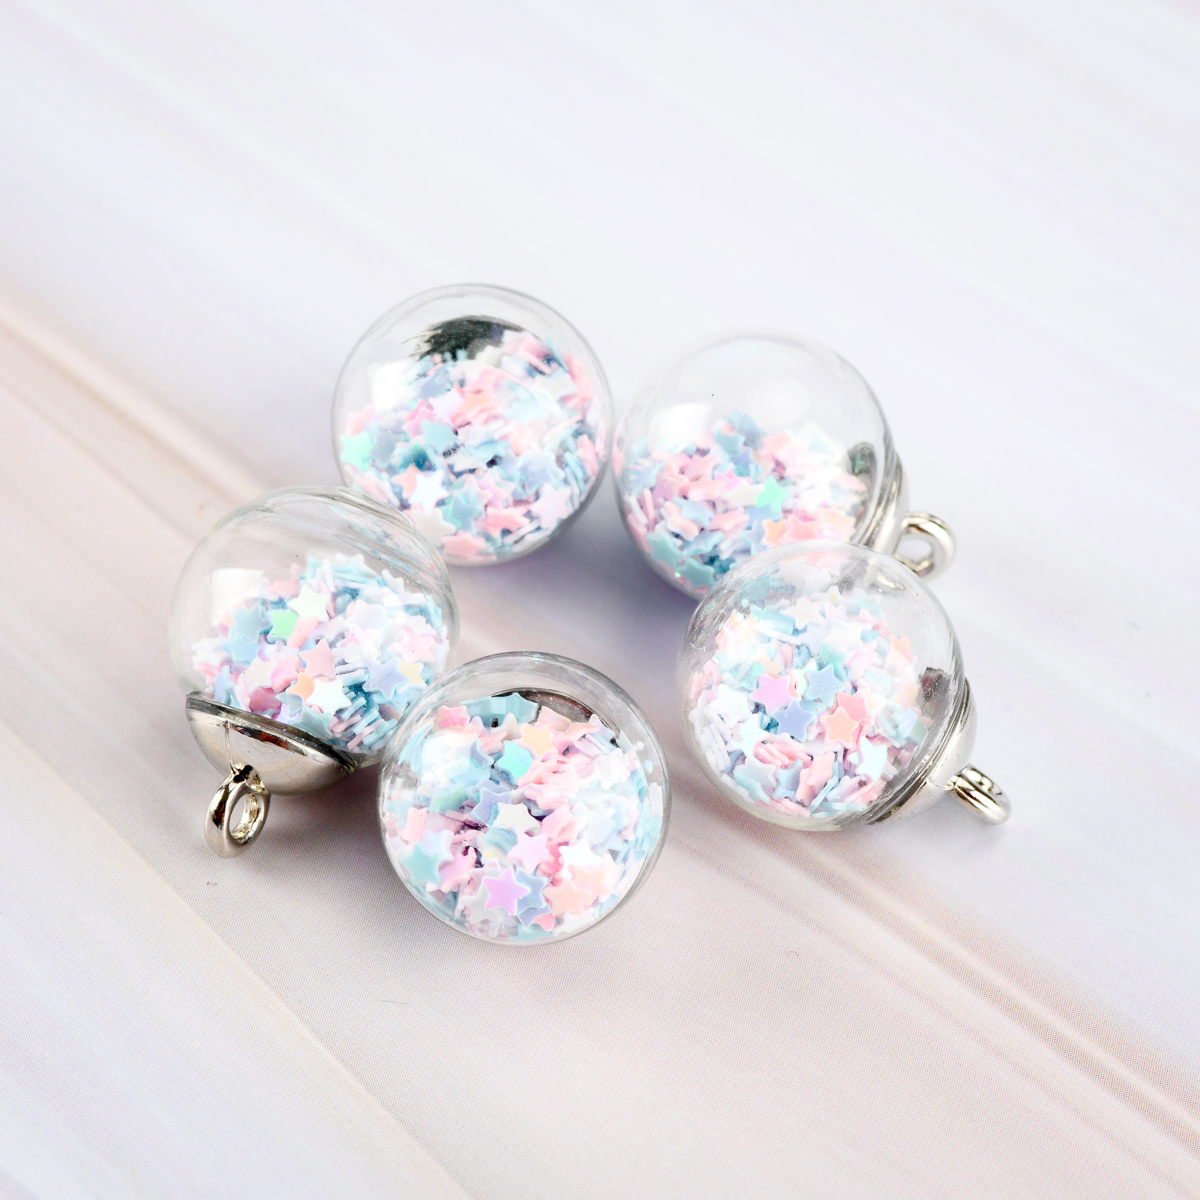 Hollow DIY Glasses Beads Glass Charms Pendant Flower Beads & Jewelry Making Glass Beads Wholesale #IY104